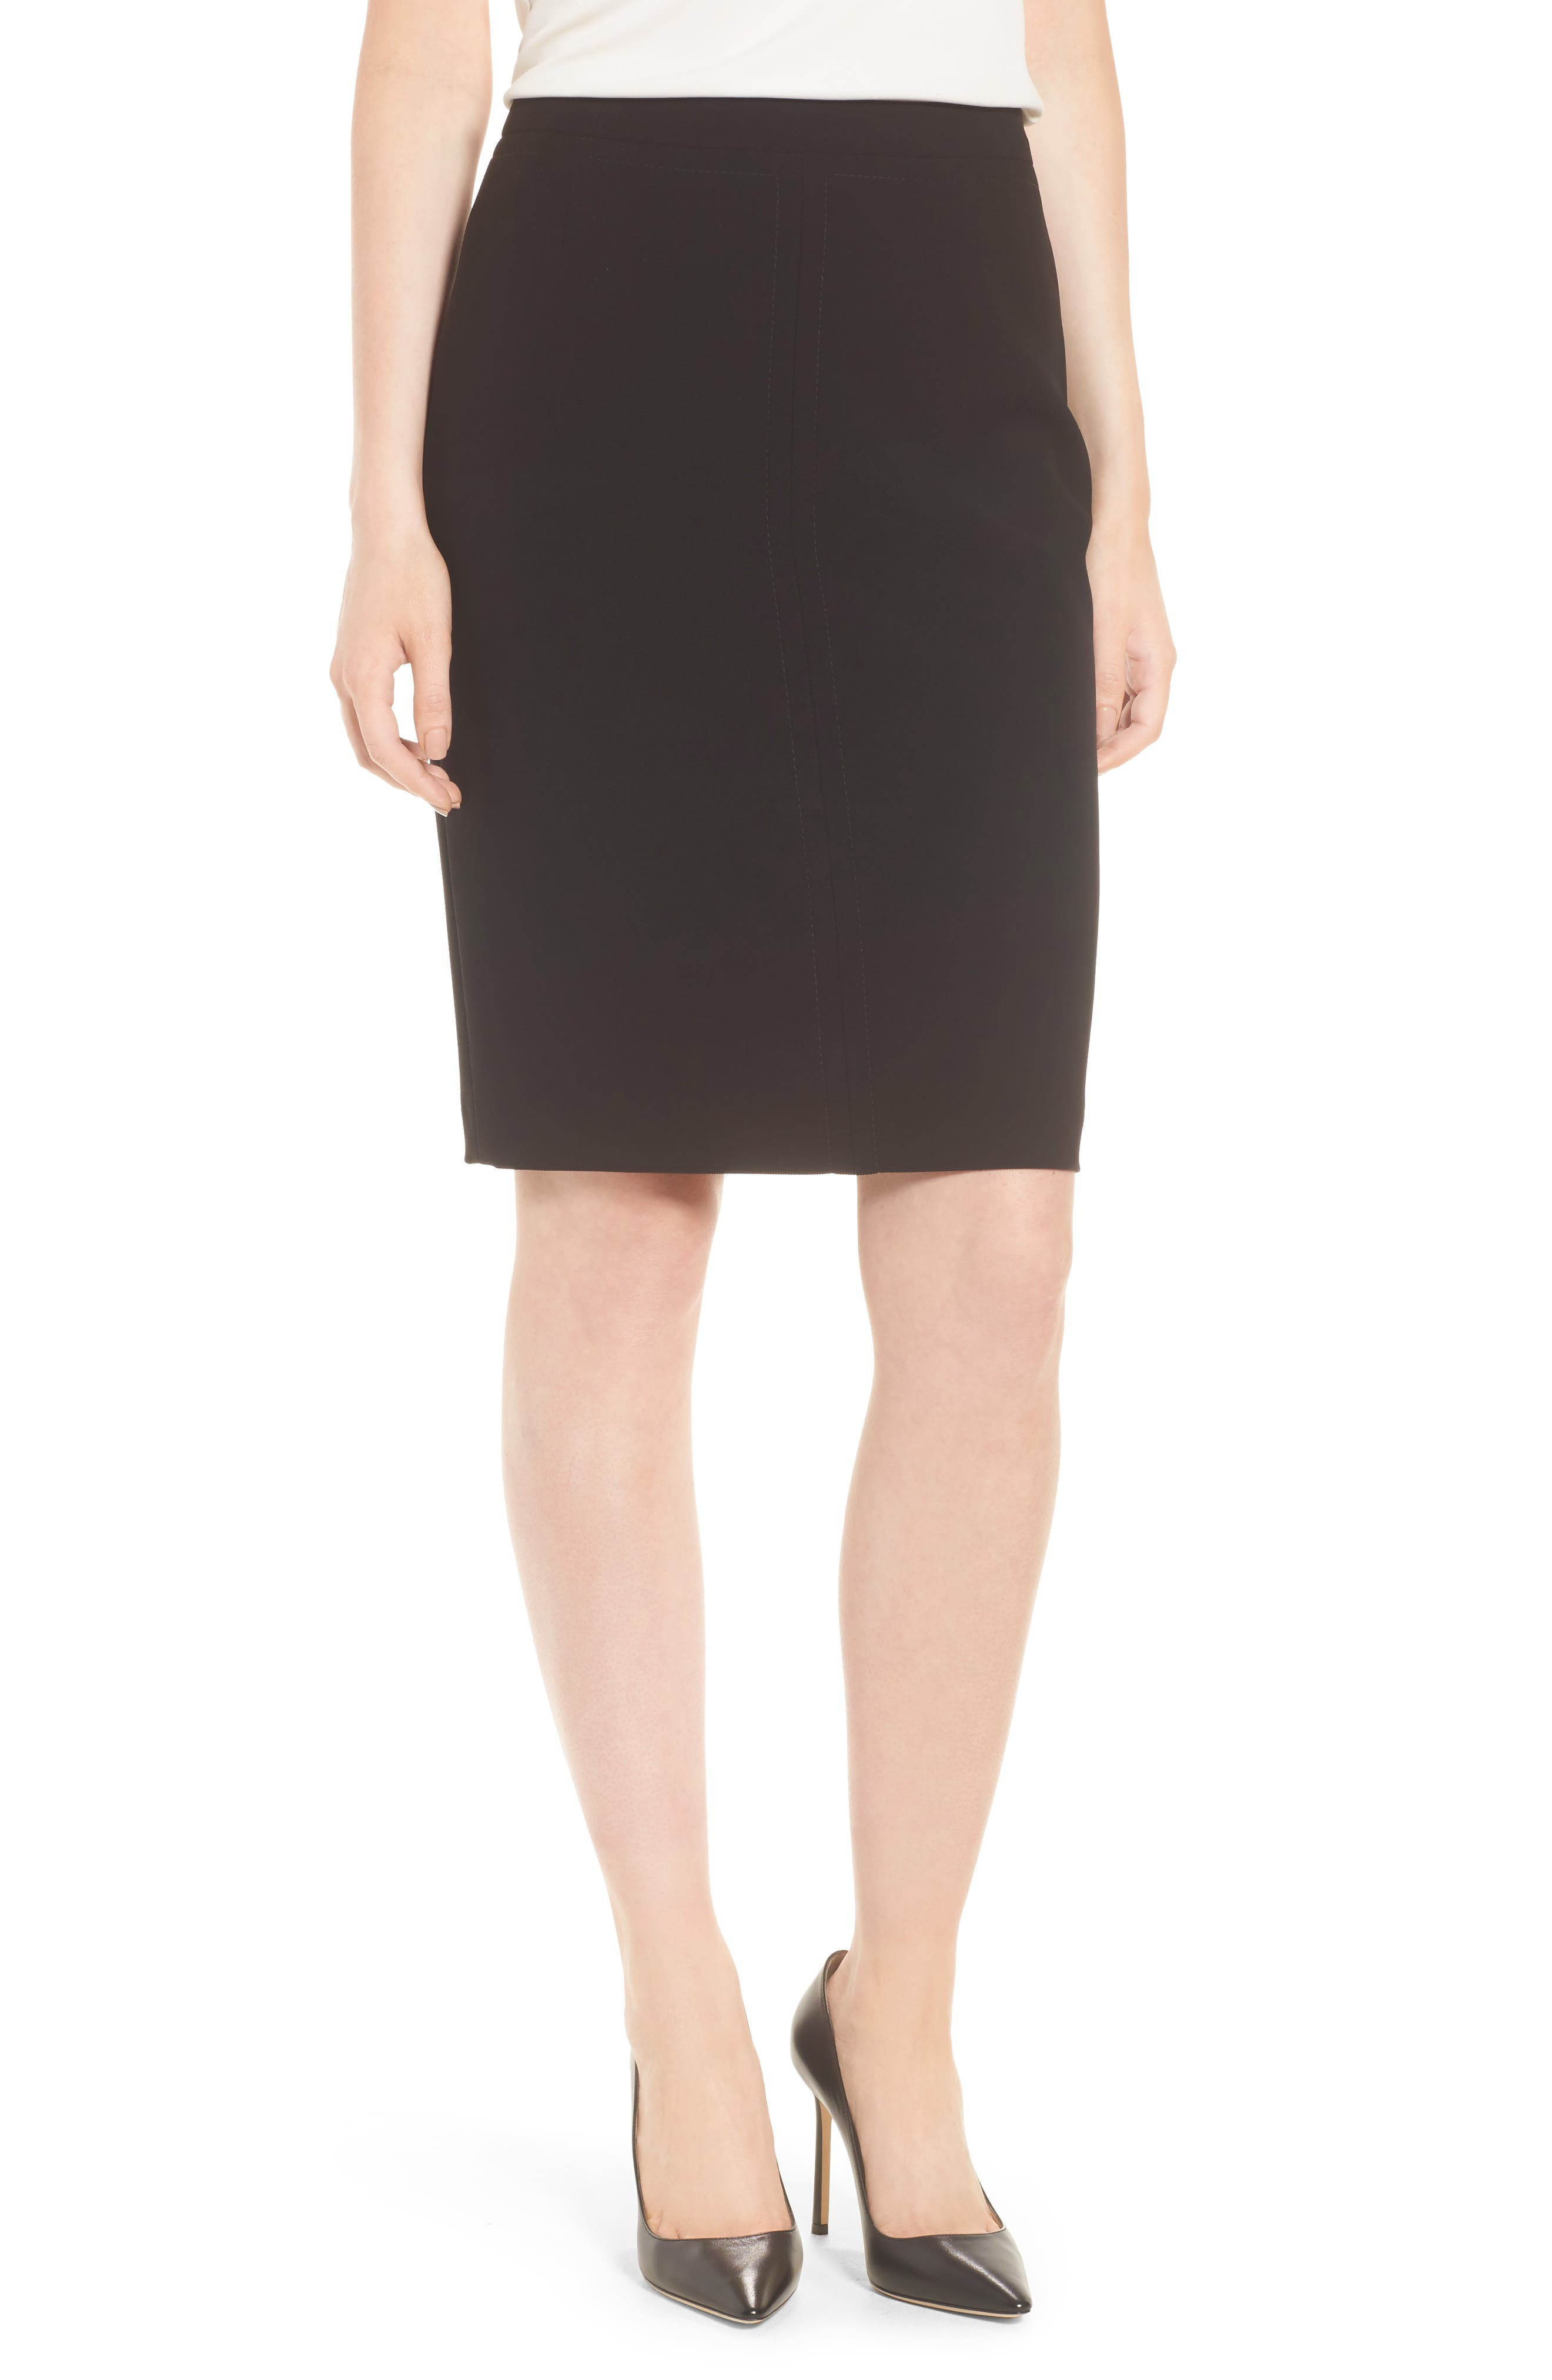 Vuriona Pencil Skirt,                         Main,                         color, Black